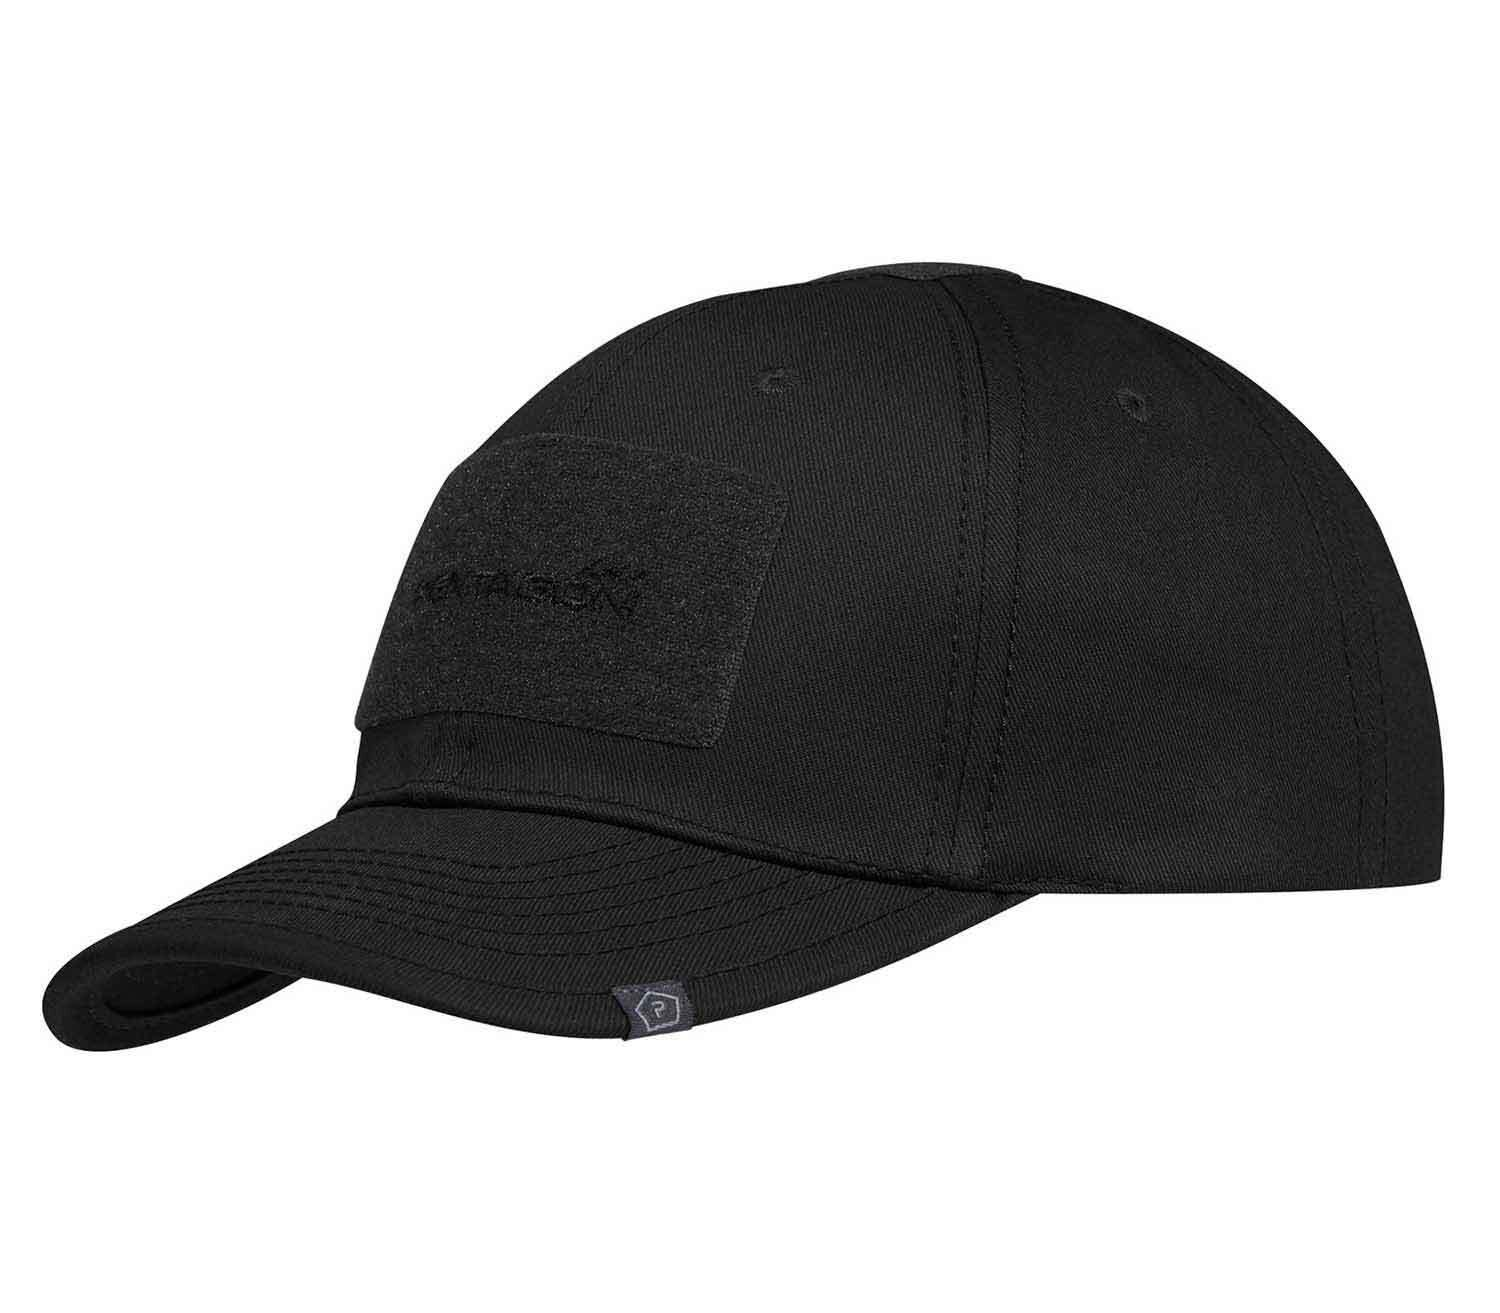 Gorra-Pentagon-Tactical-2.0-Negro-1.jpg